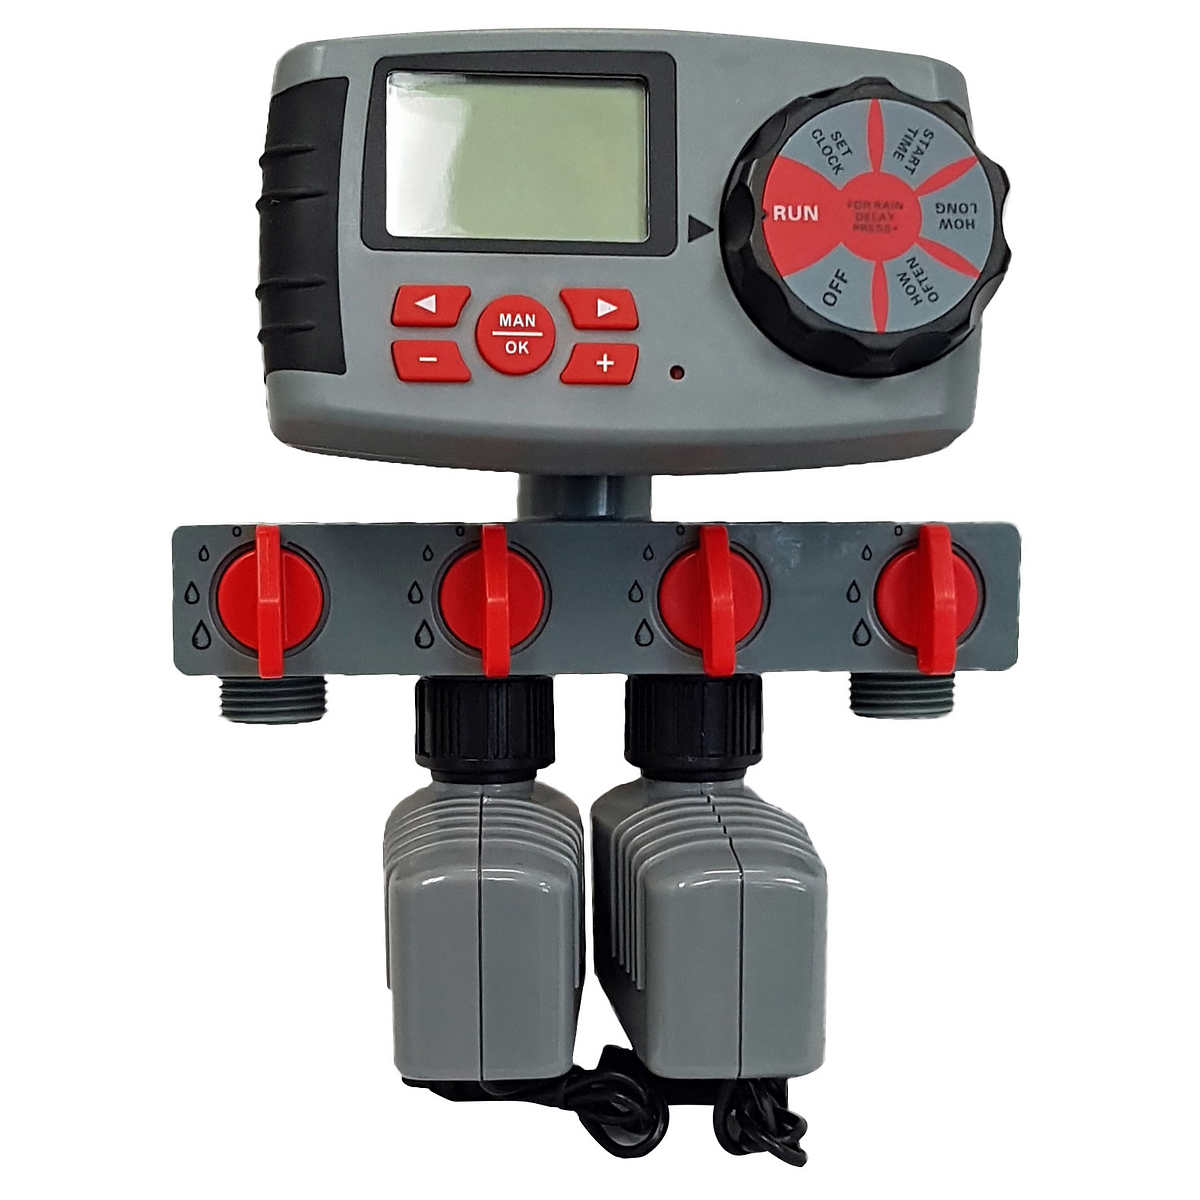 RainWave 4-zone Water Control with 2 Digital Timers